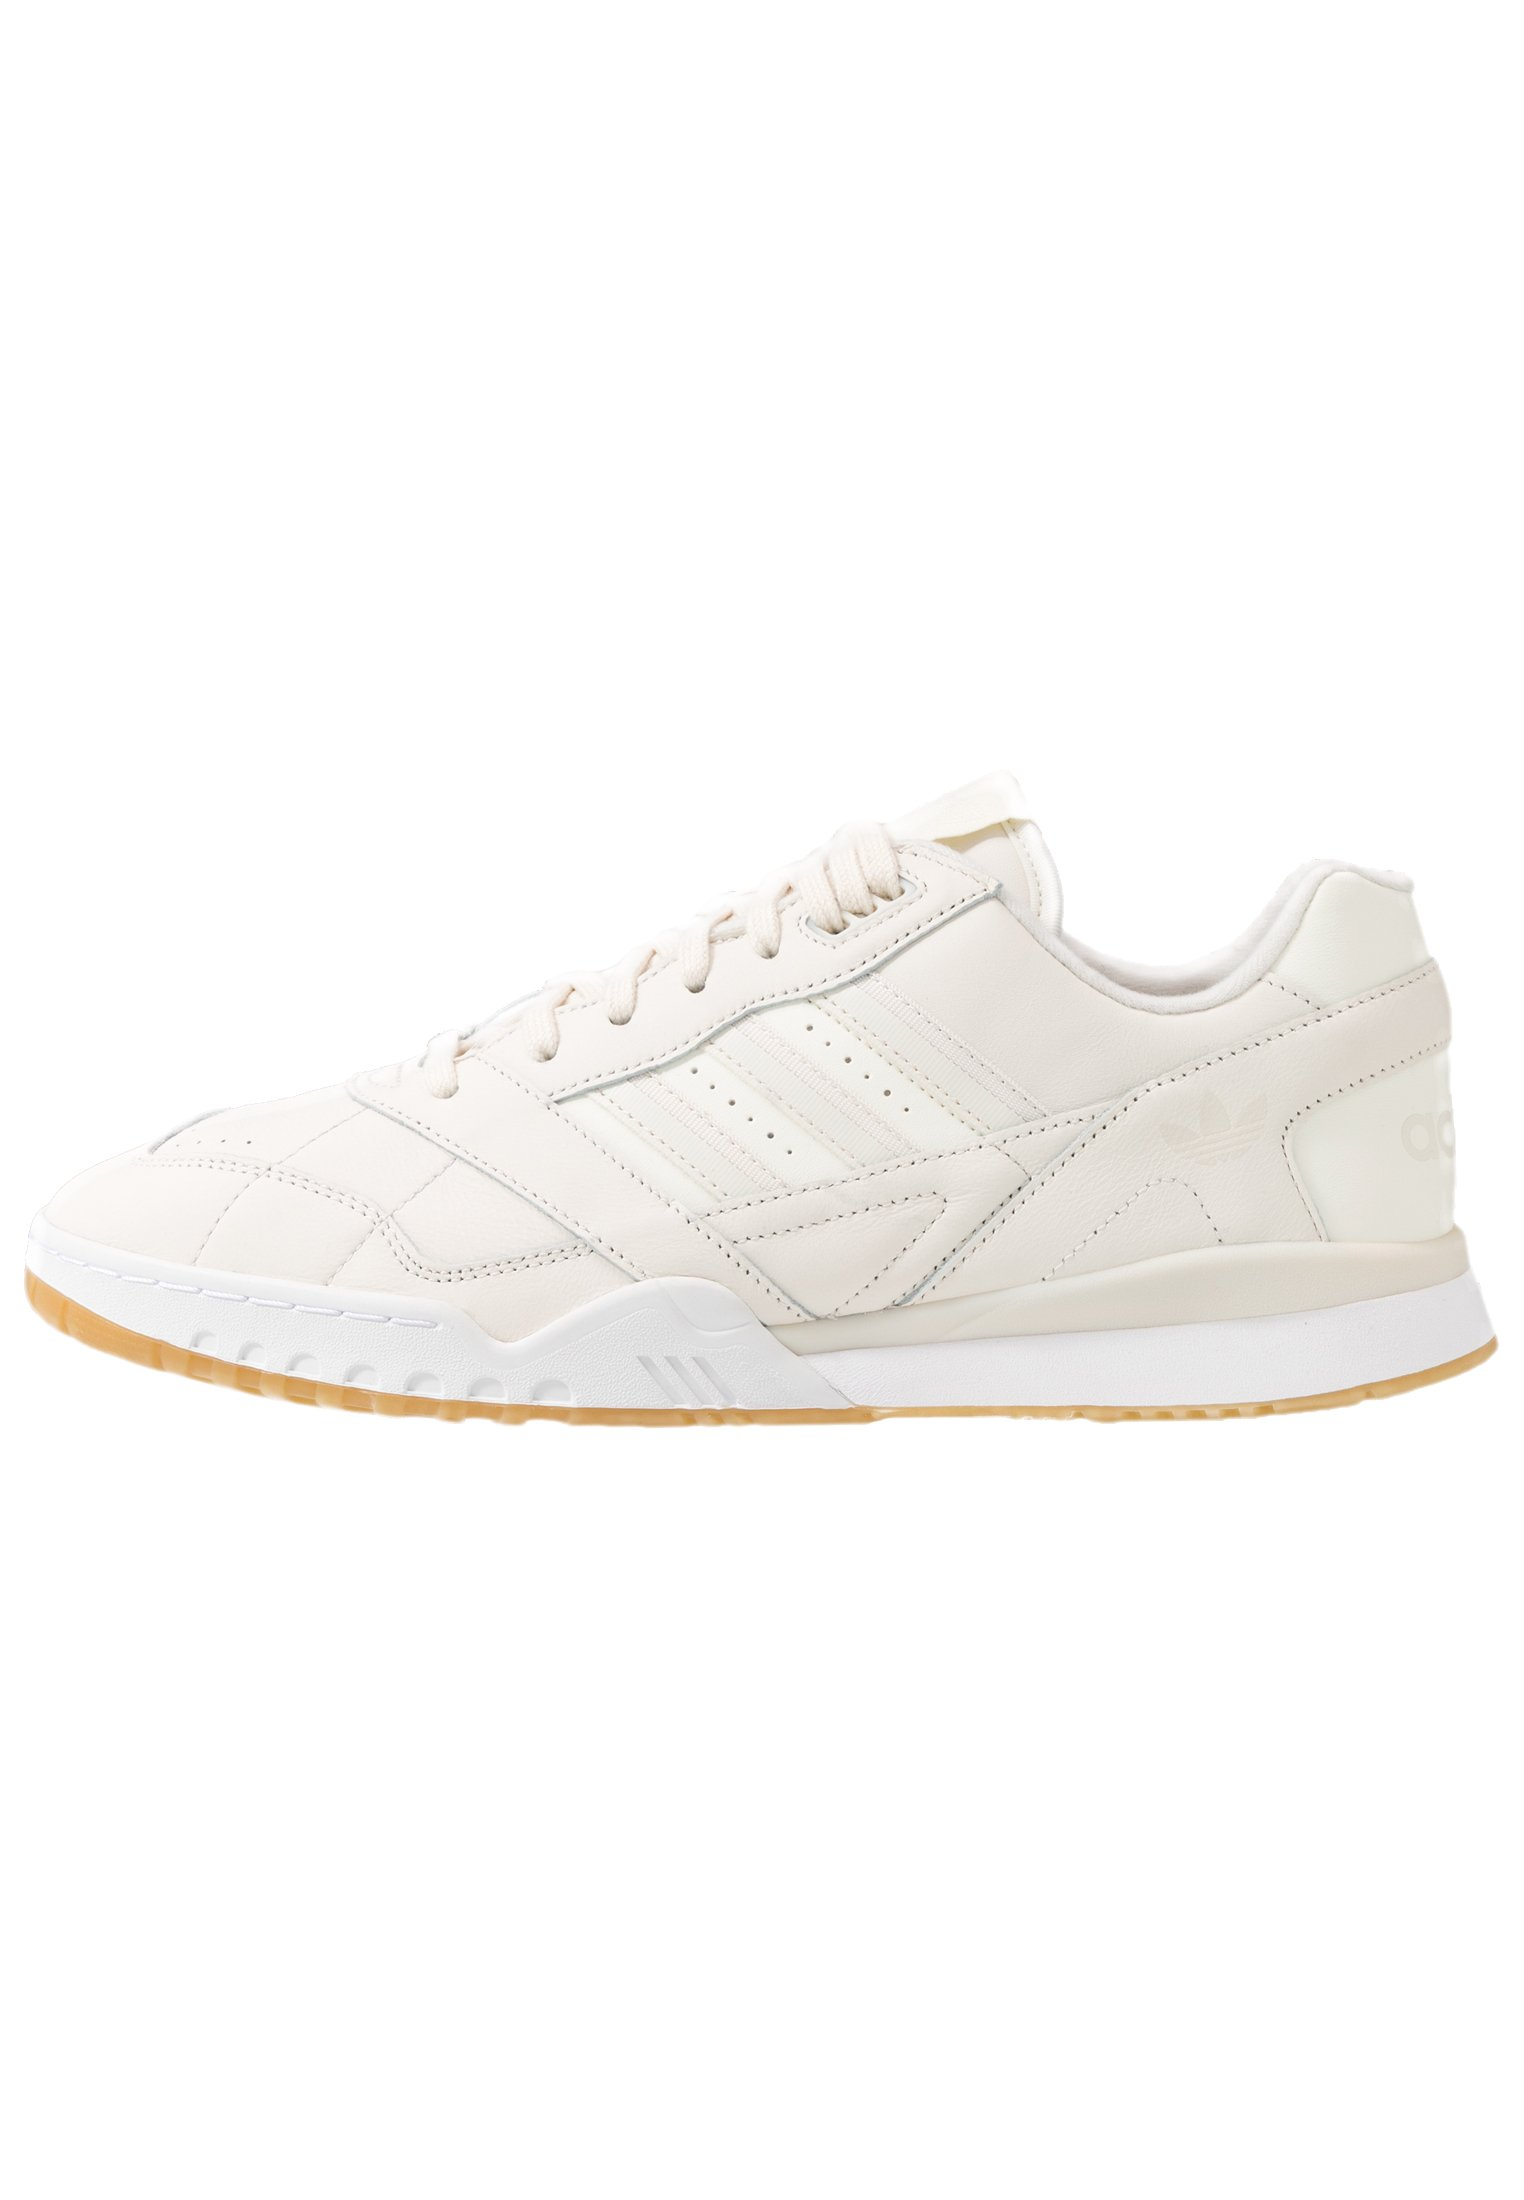 A.R. TRAINER Sneaker low chalk whitefootwear white